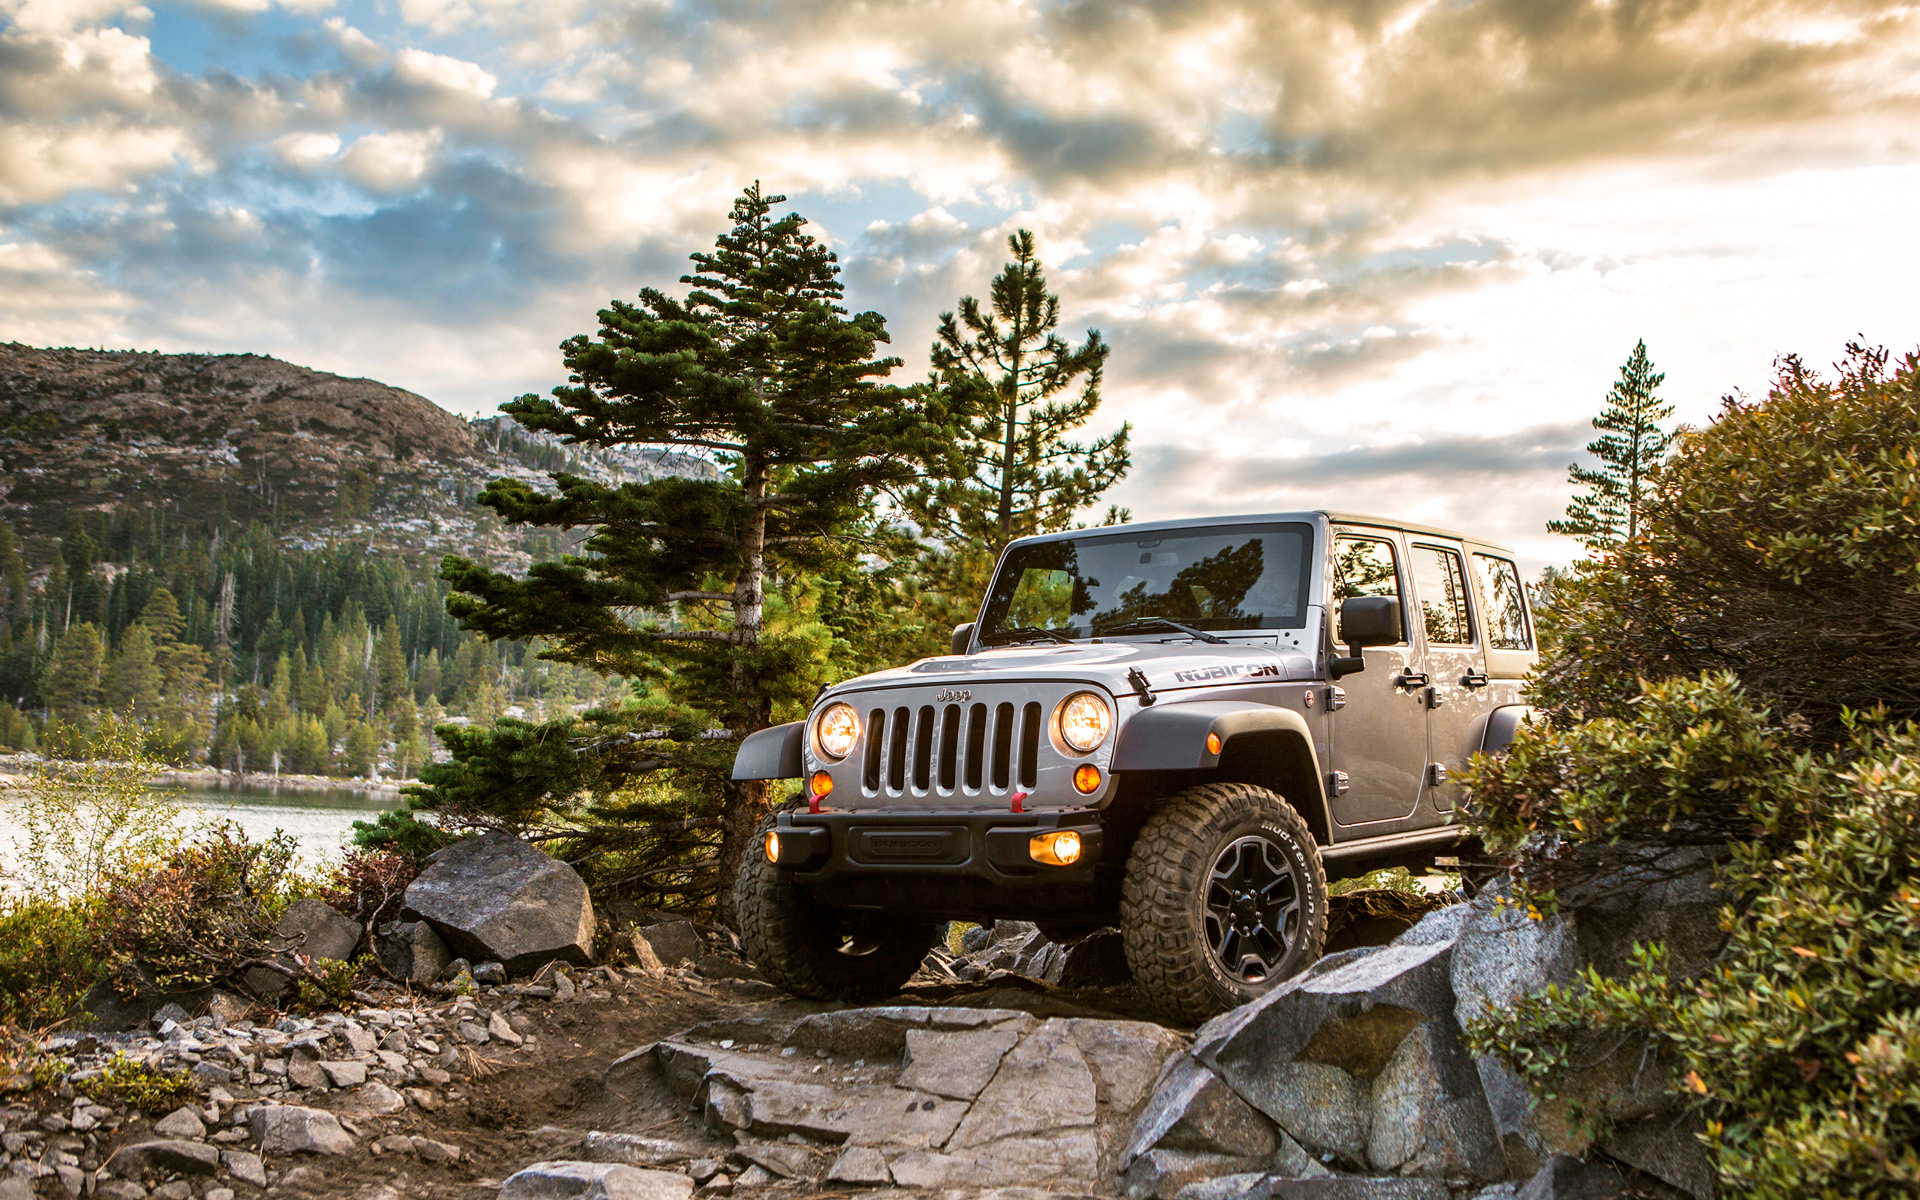 2013 Jeep Wrangler wallpapers HD   291304 1920x1200